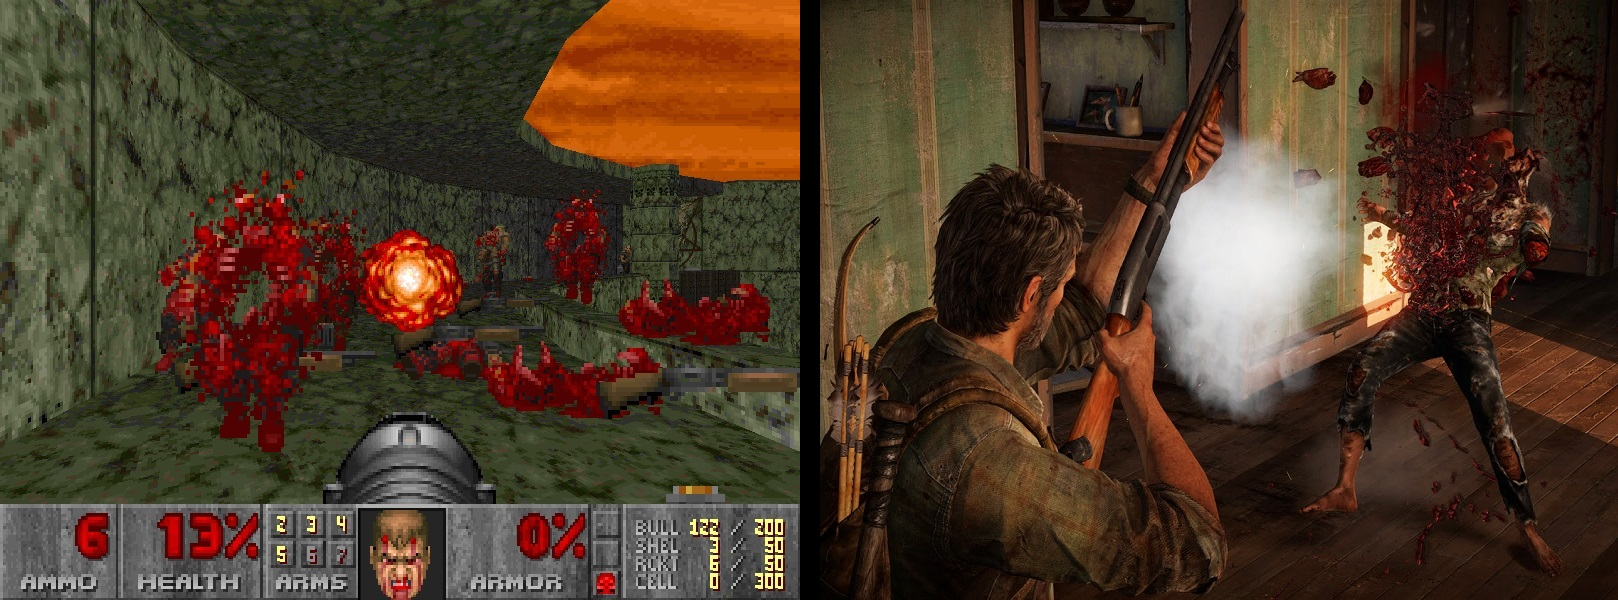 Two decades of violent gaming: from Doom (1993) to The Last Of Us (2013)